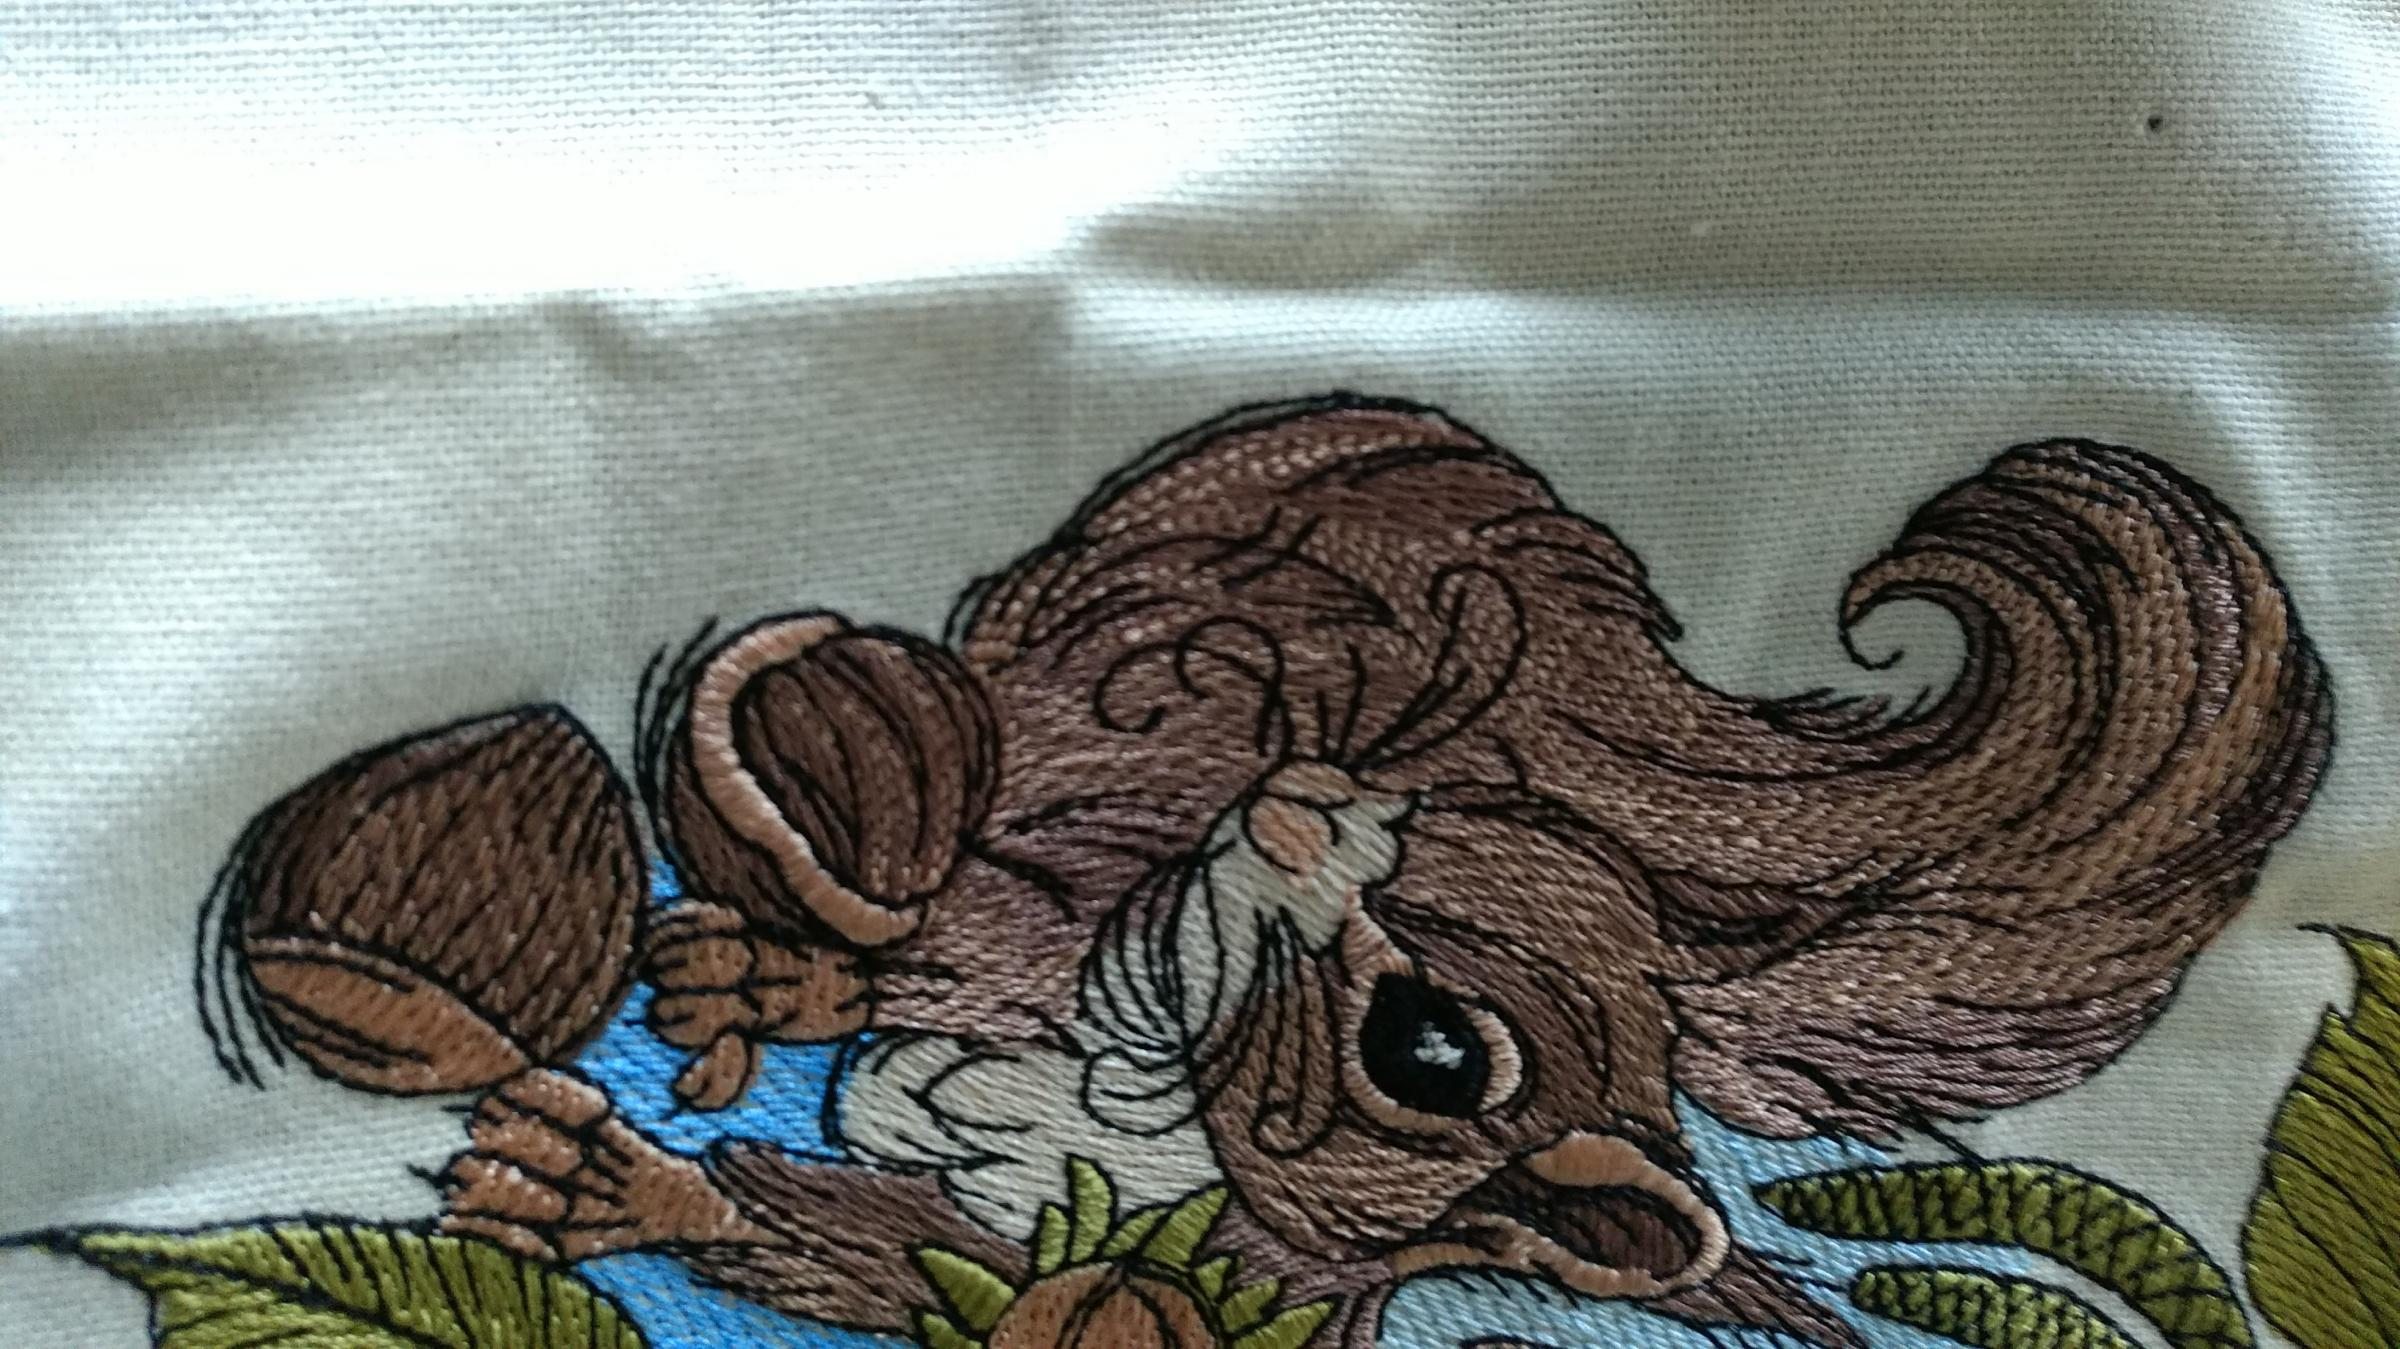 Squirrel with hazelnut embroidery design at napkin